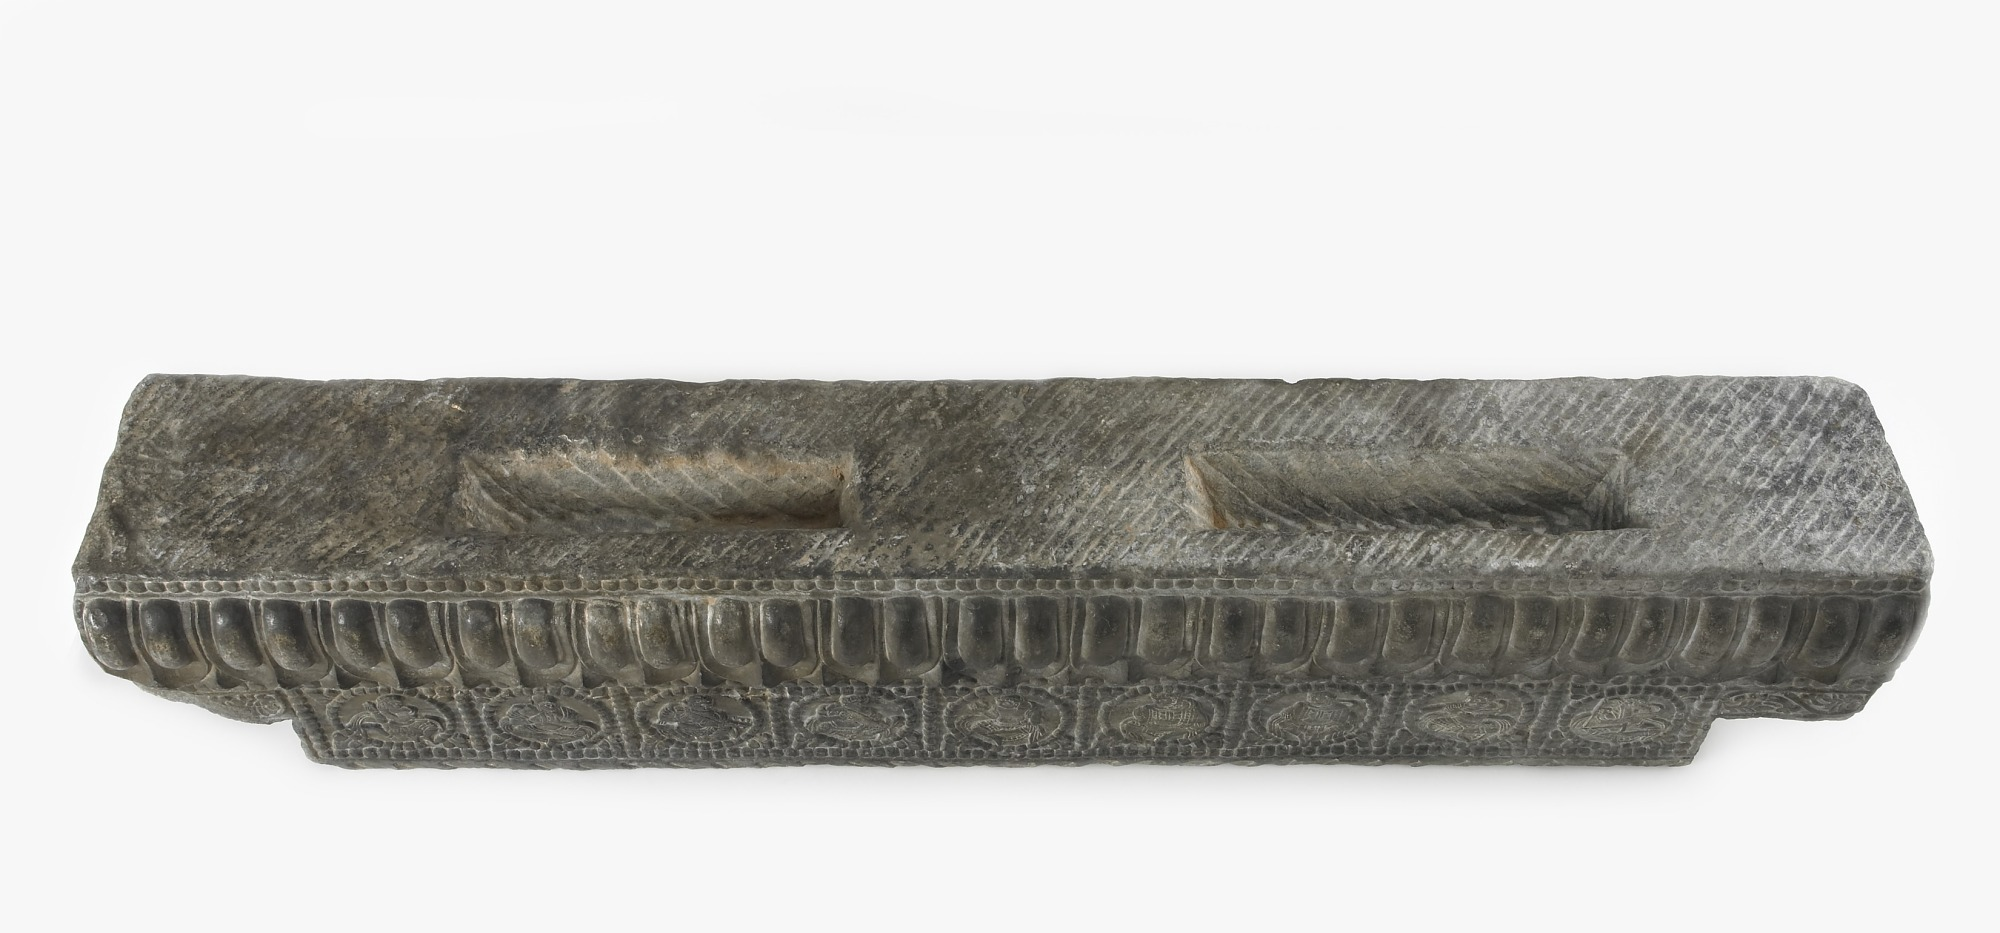 3/4 profile: Lateral stretcher from the base of a funerary couch with Sogdian musicians and a dancer